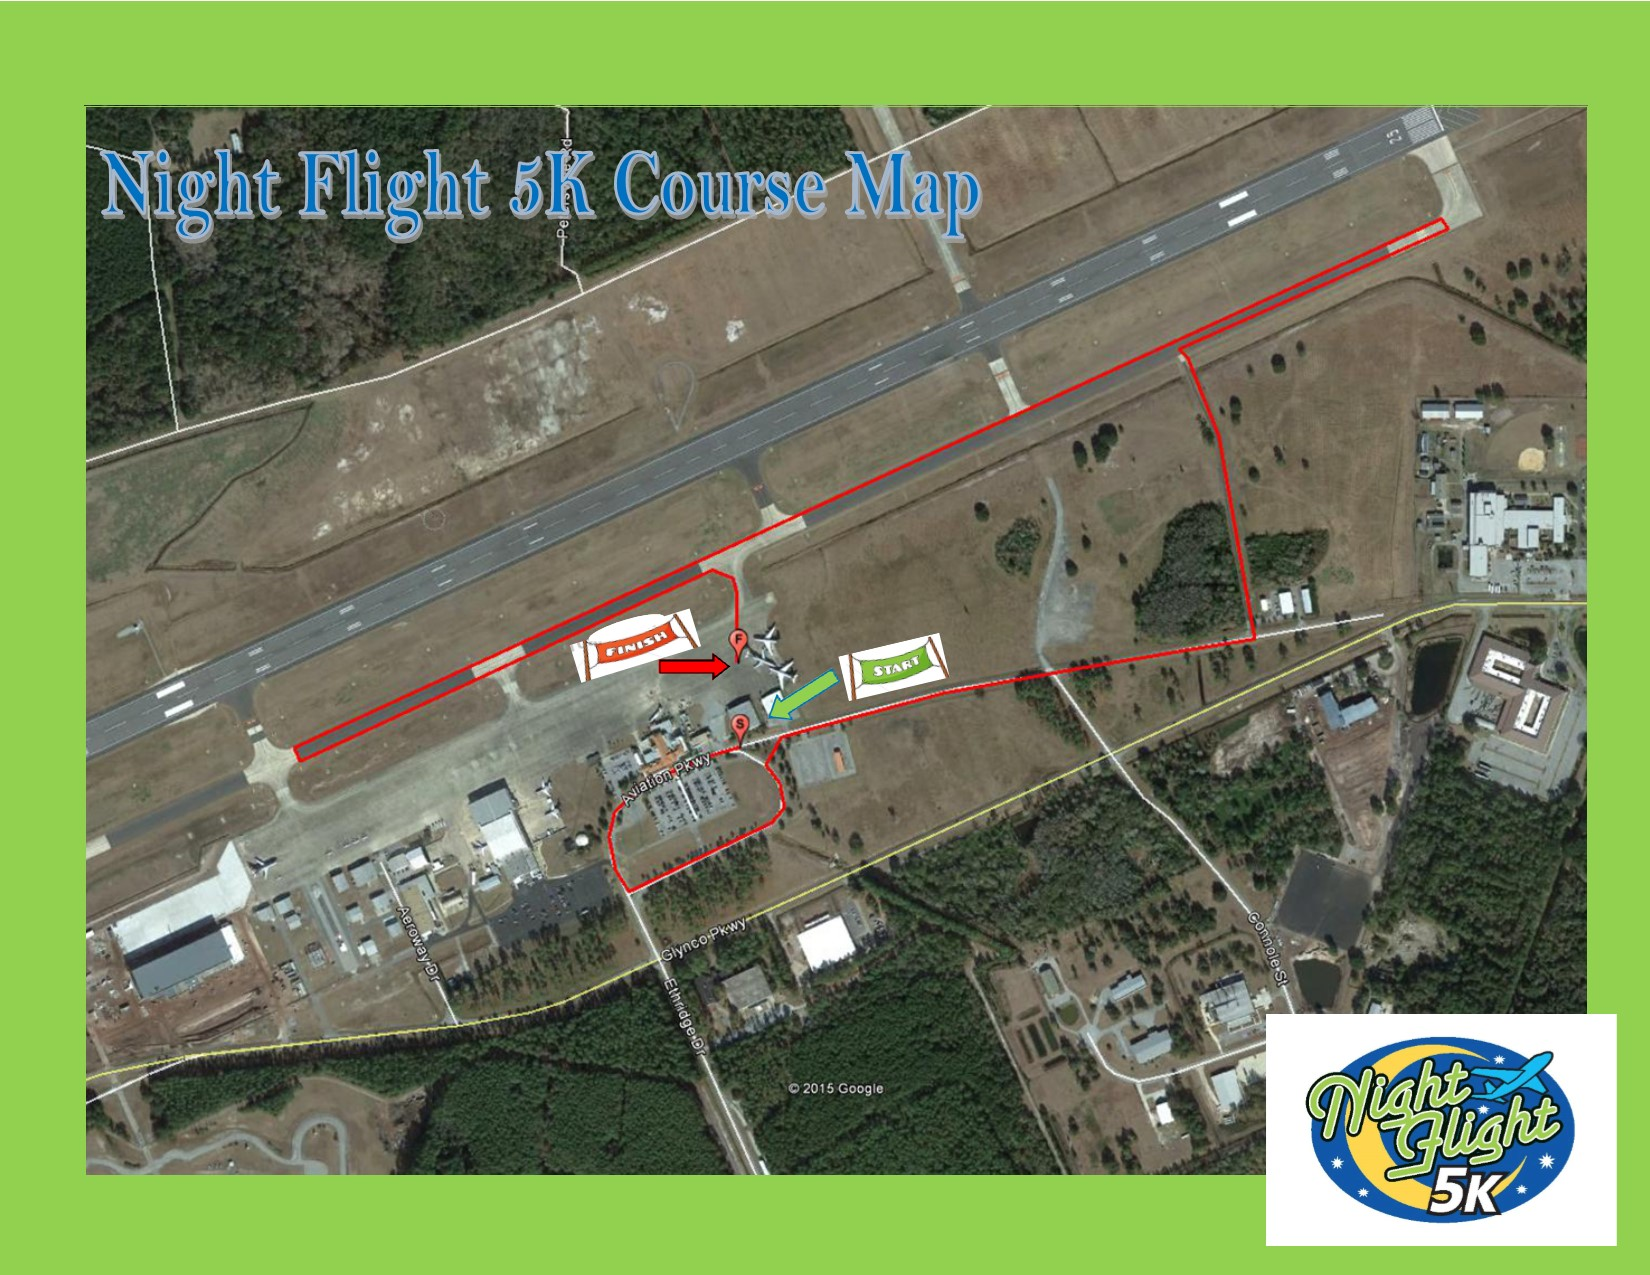 Night Flight 5K Course Map